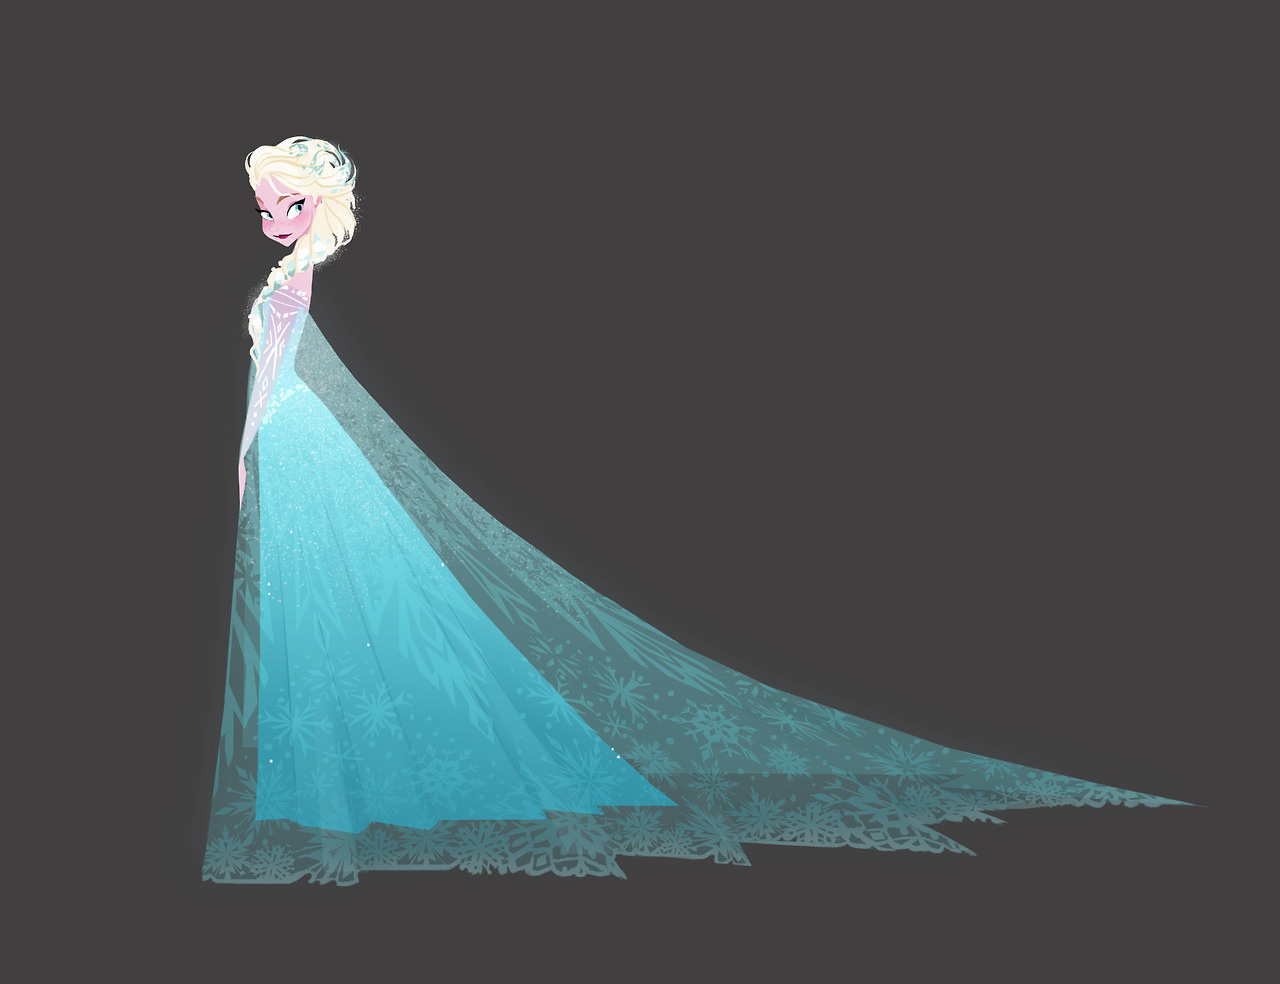 Disney_Frozen_Concept_Art_08